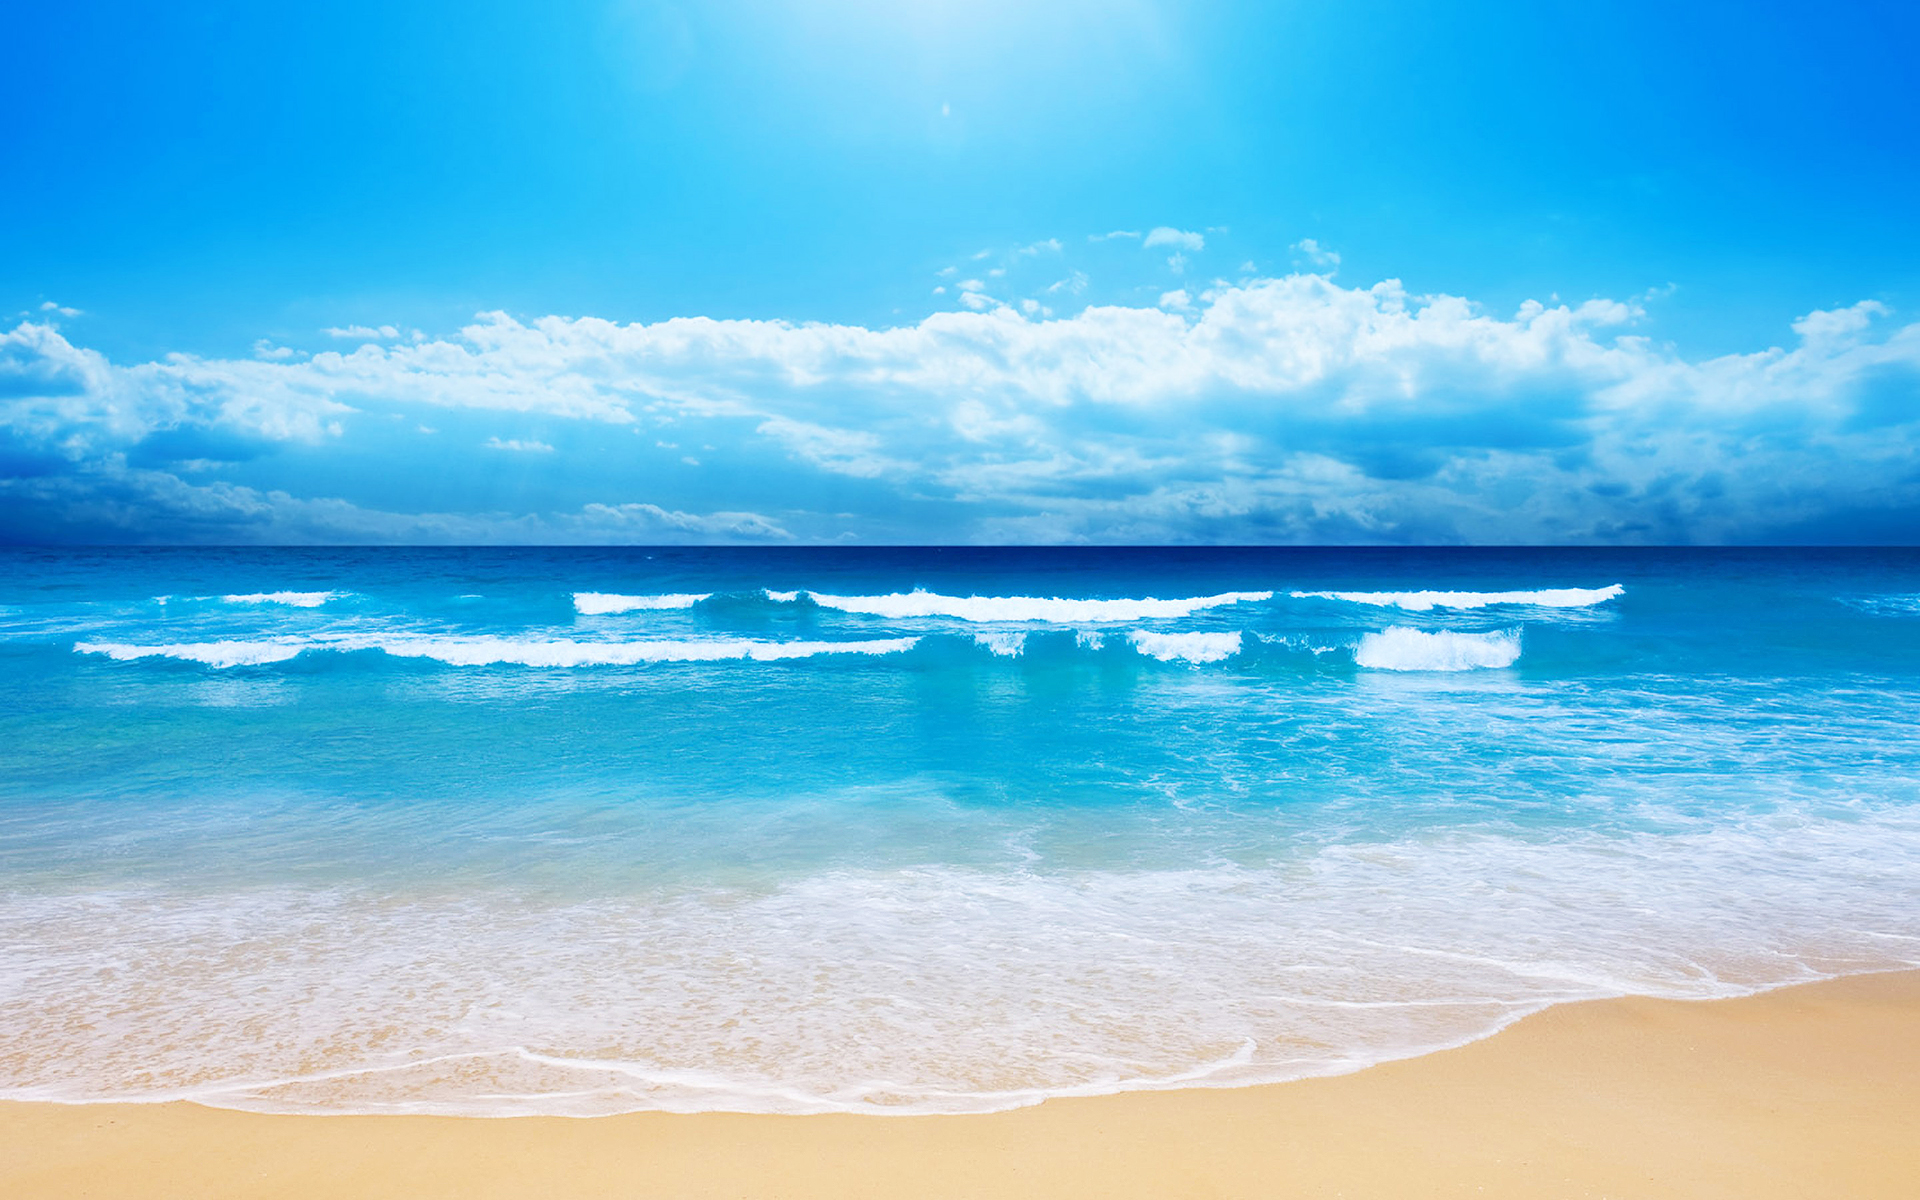 sea pictures wallpaper